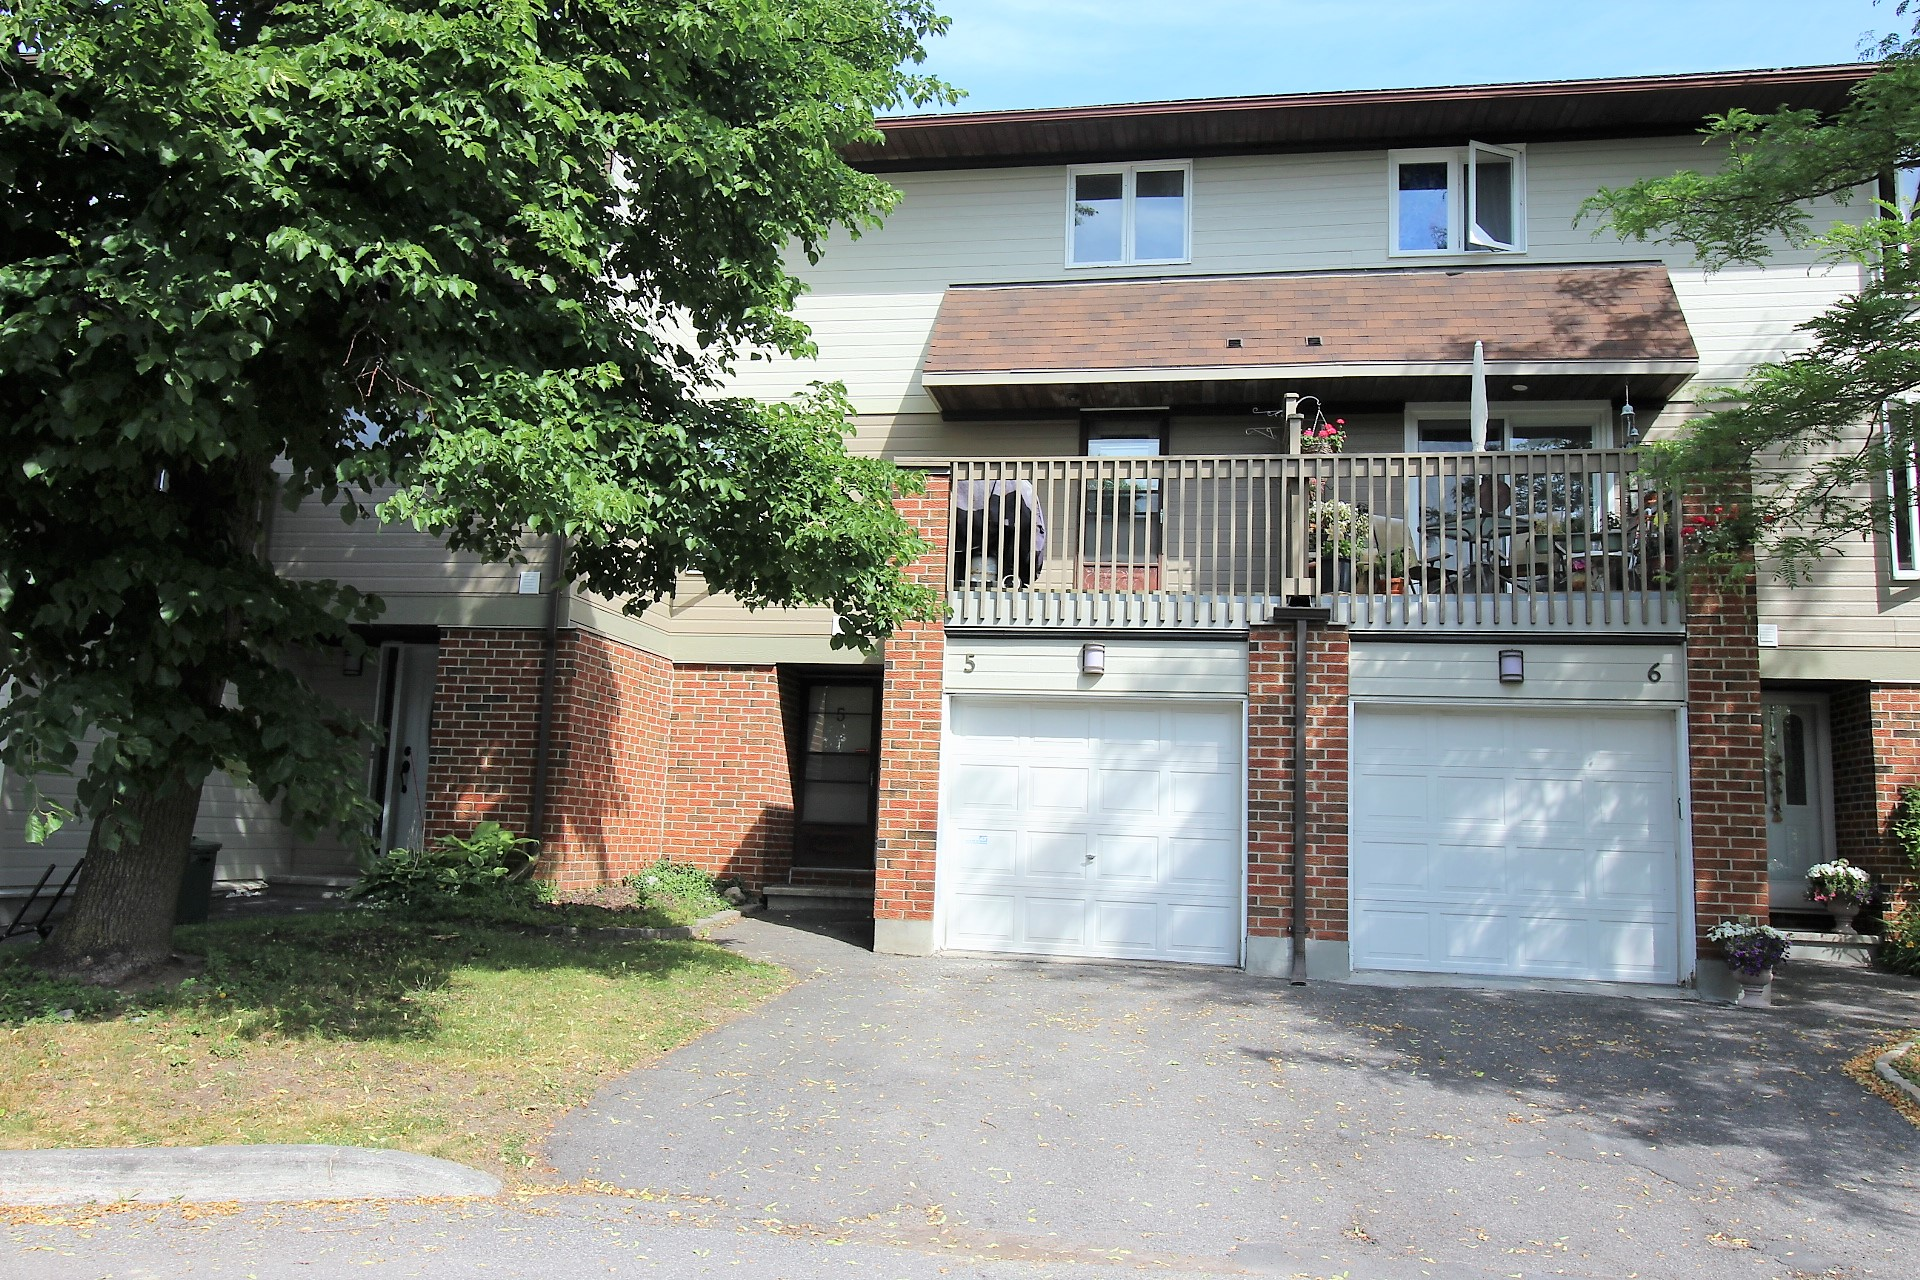 5-3205 Uplands Dr - Spacious 3 Bedroom Condo Townhouse for Sale in popular Hunt Club Woods area!